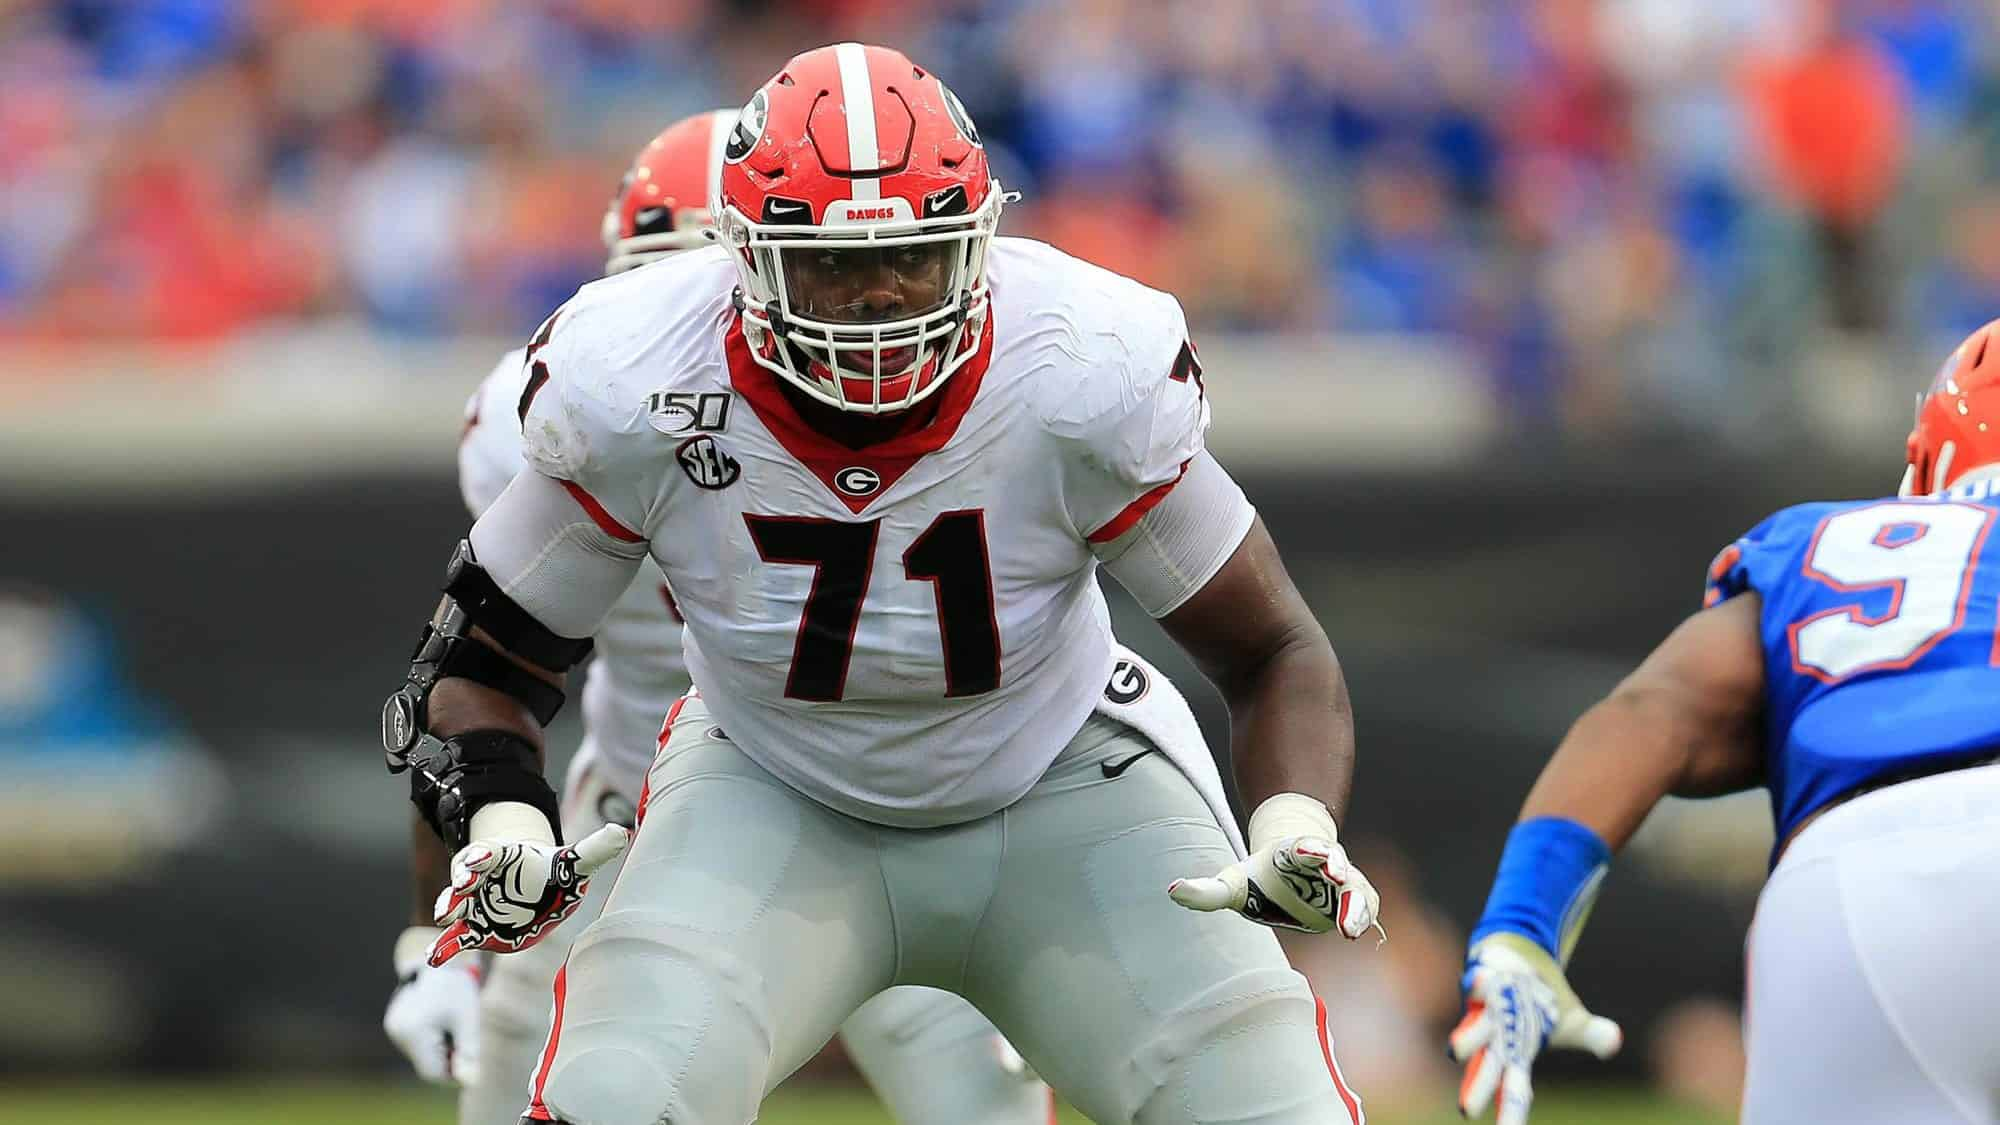 NFL Draft 2020: How will Andrew Thomas impact the New York Giants?